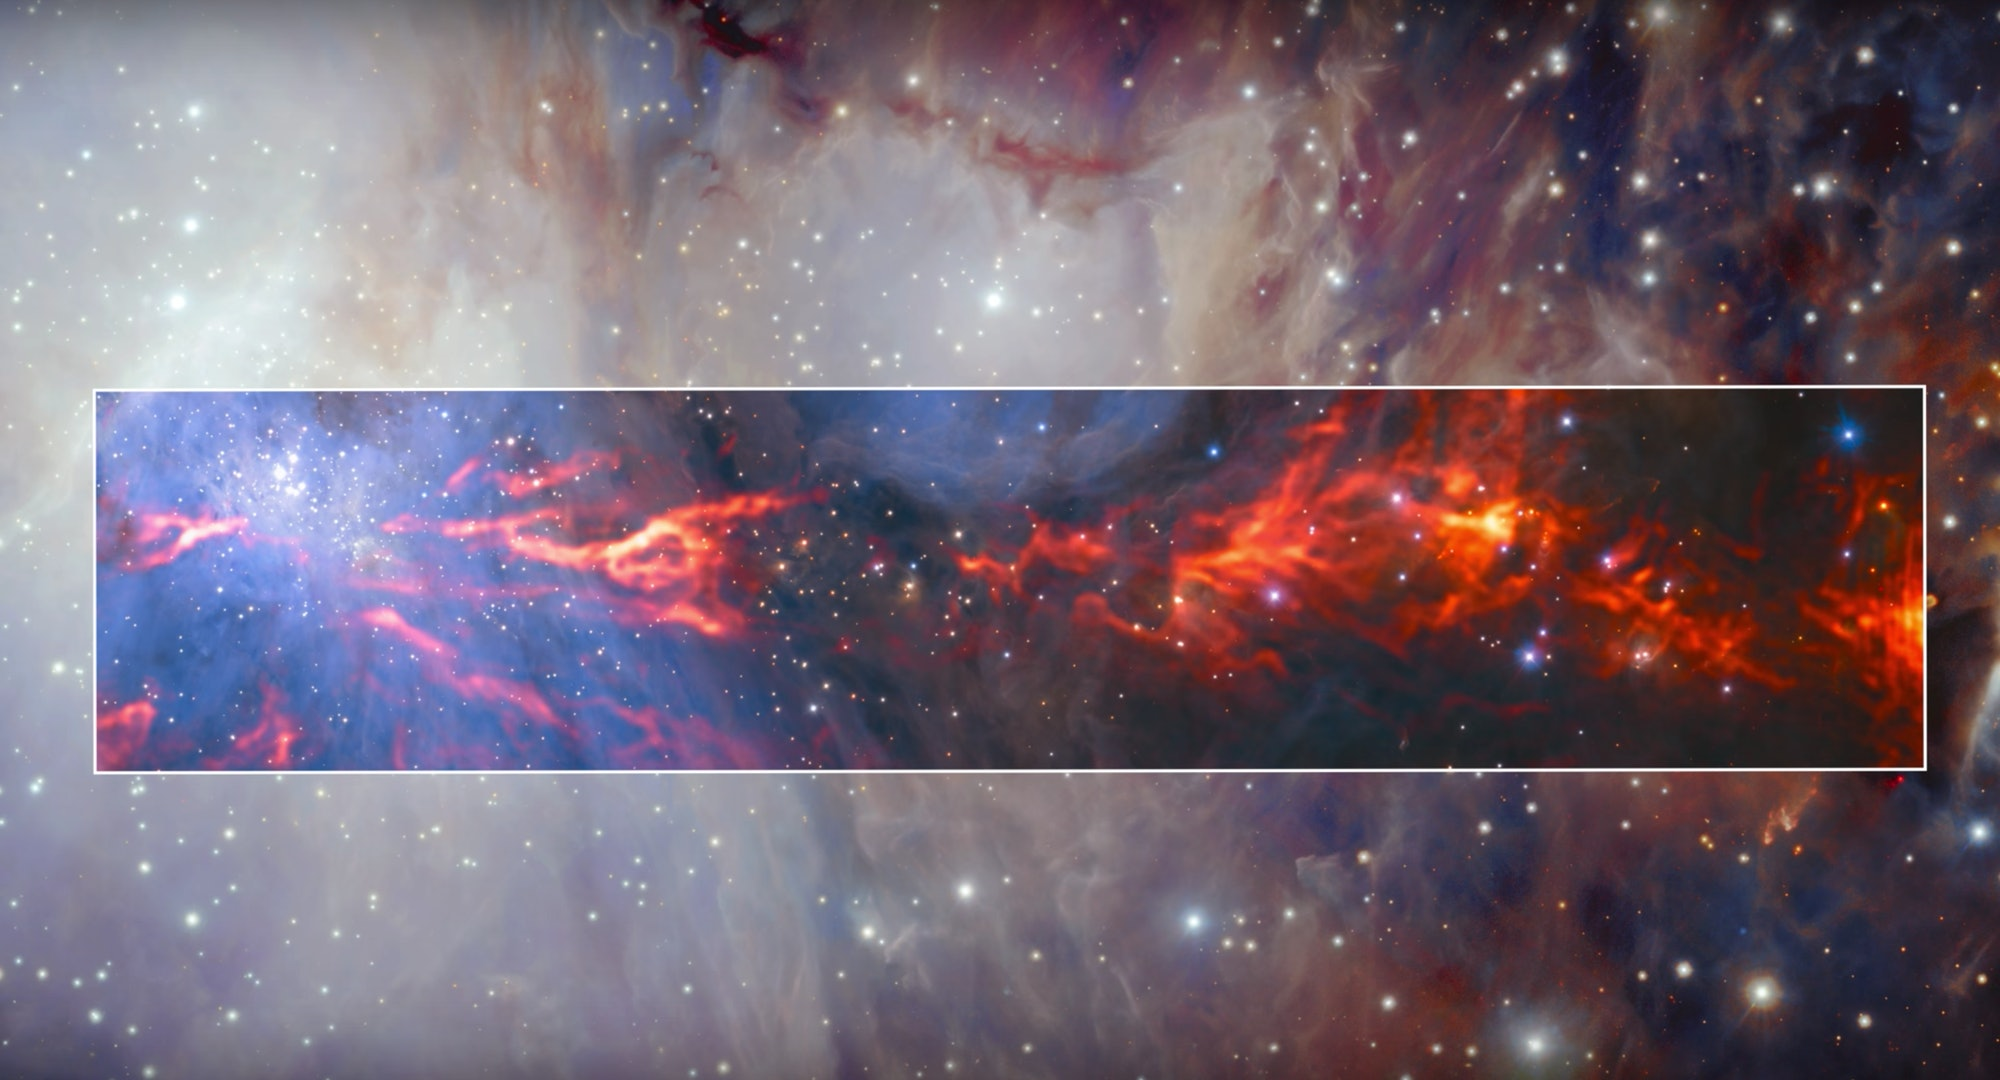 This spectacular and unusual image shows part of the famous Orion Nebula, a star formation region lying about 1350 light-years from Earth.